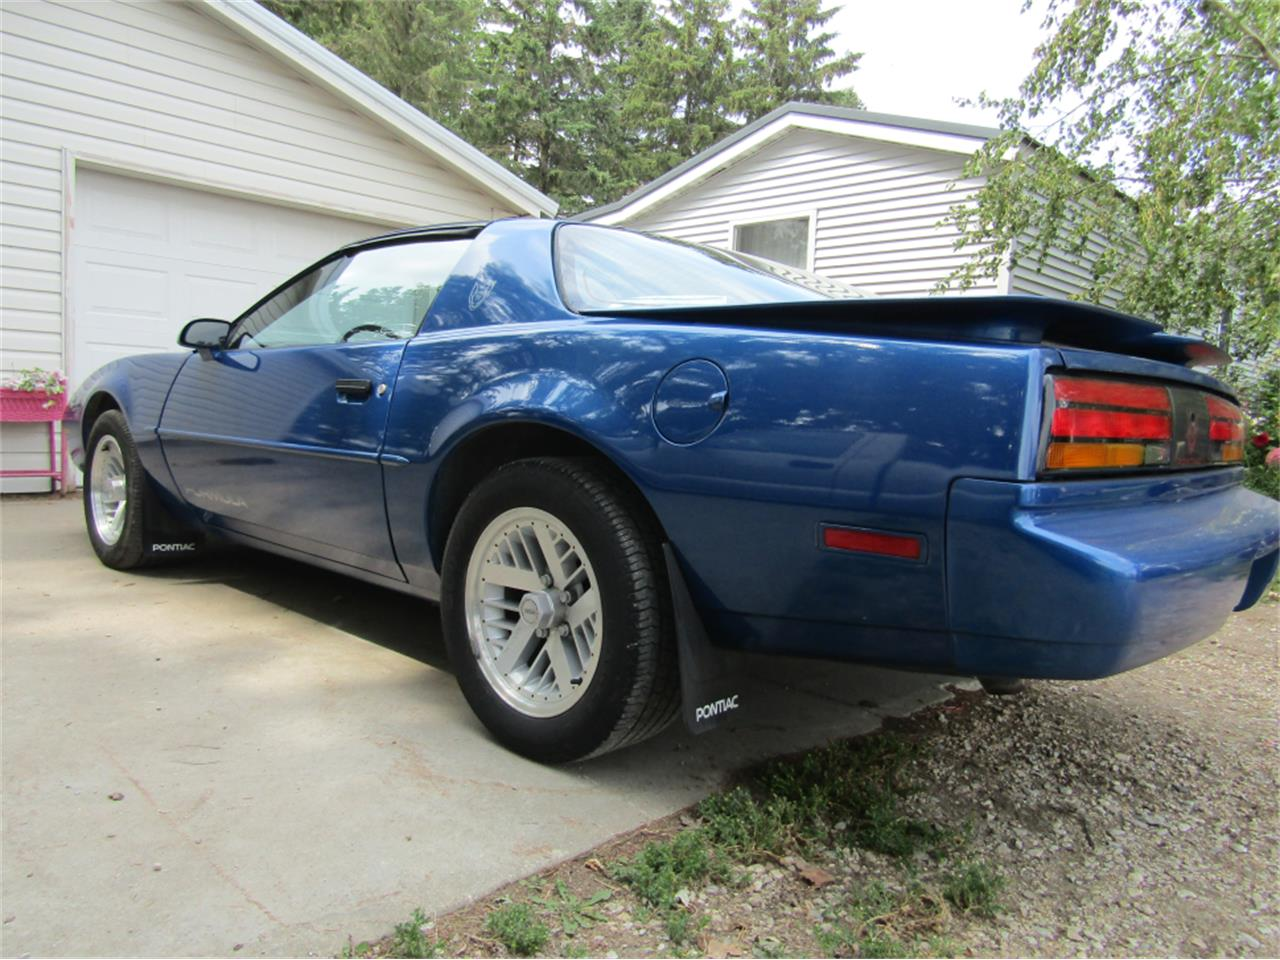 Large Picture of 1991 Pontiac Firebird Formula - $7,900.00 Offered by a Private Seller - LQ9D